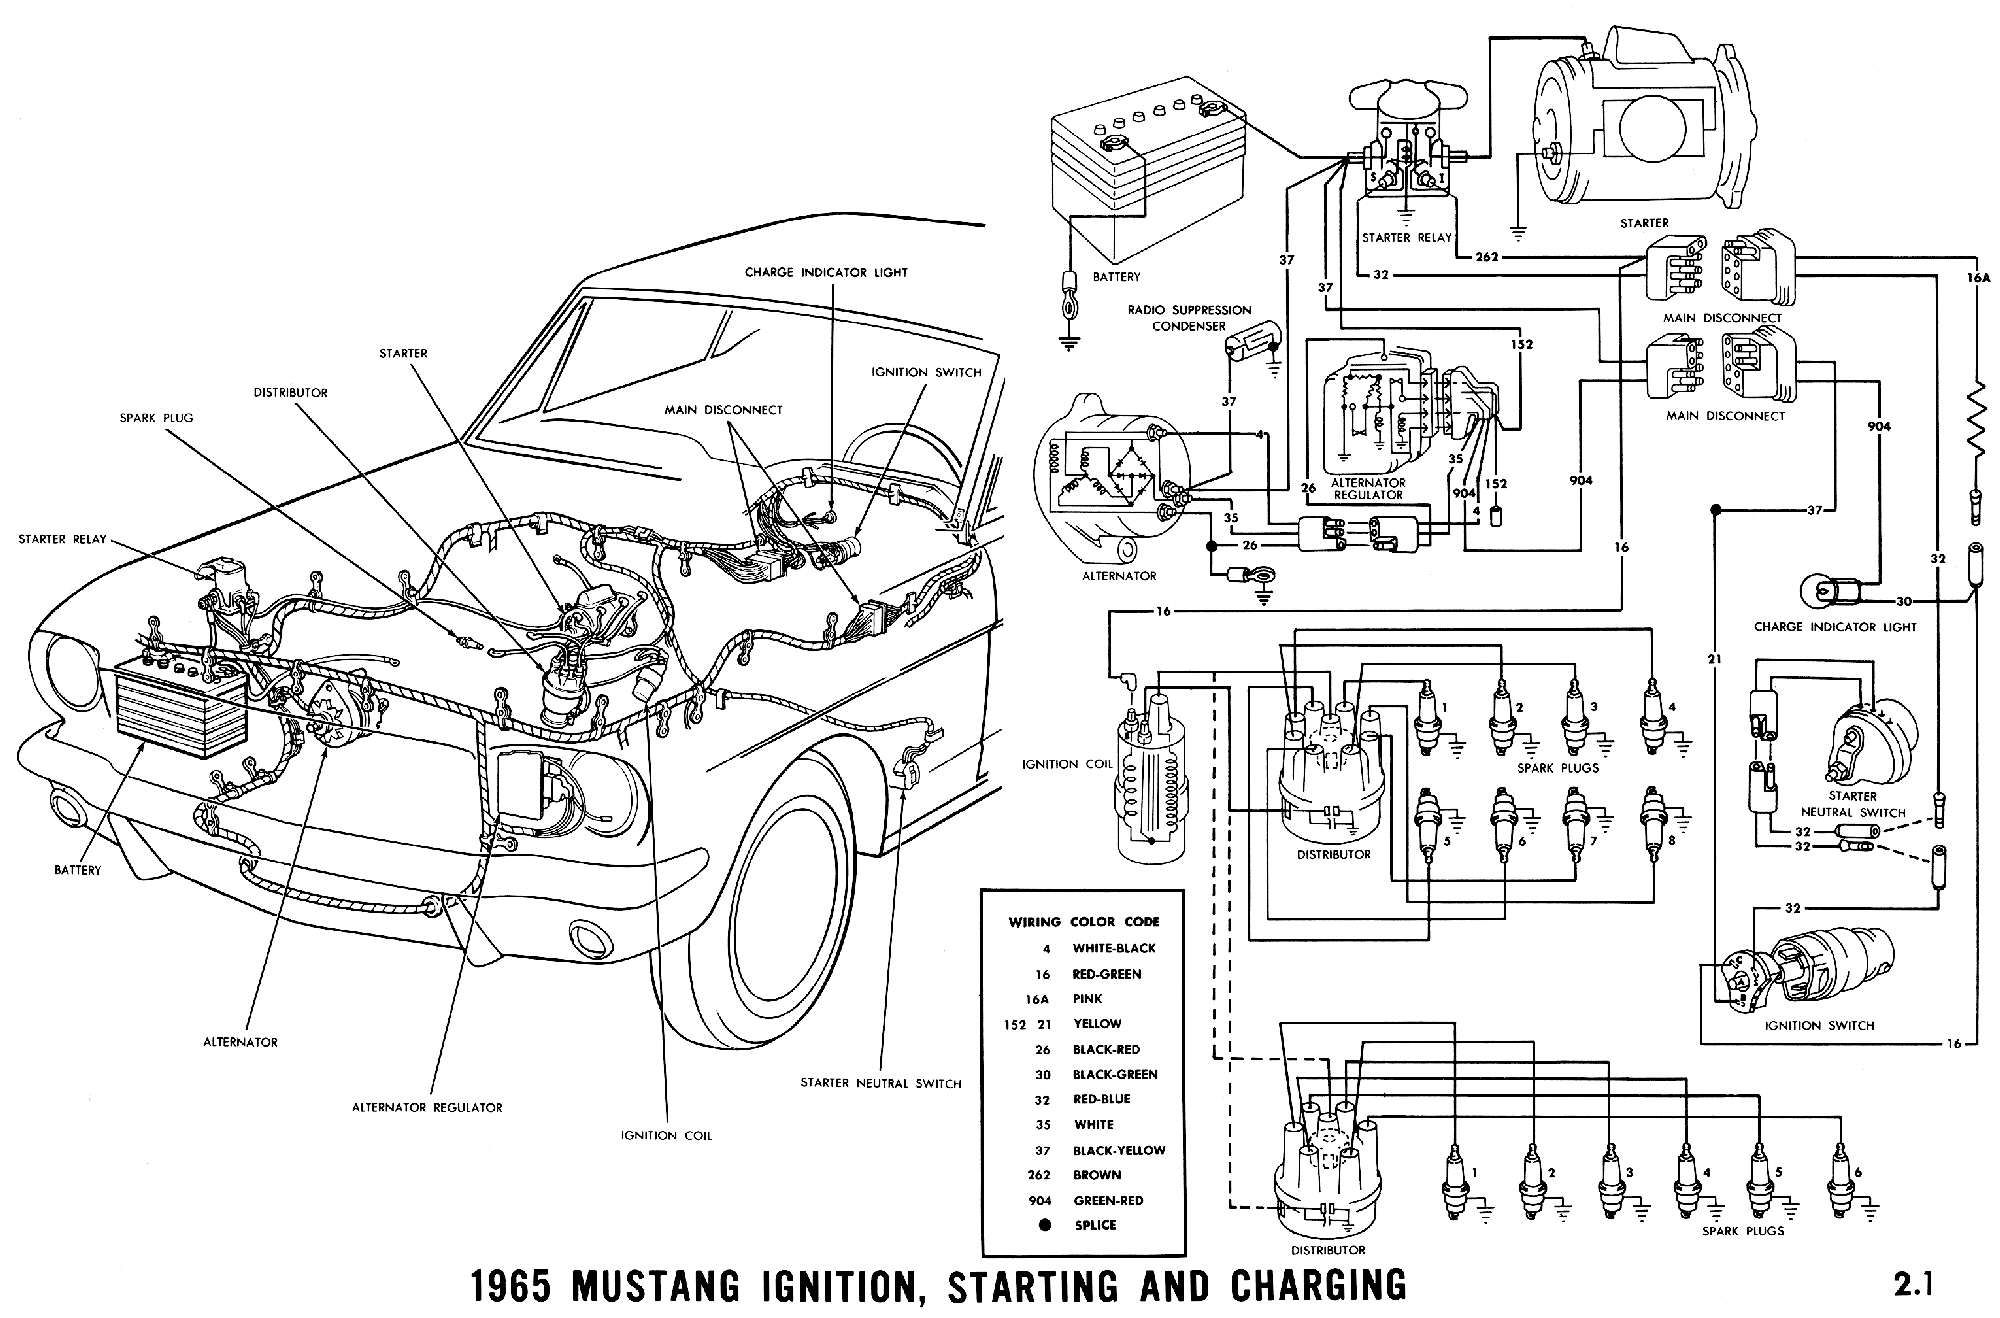 1965 mustang wiring diagrams mustang 1965 mustang mustang basic ignition wiring diagram 1965 mustang [ 2000 x 1318 Pixel ]